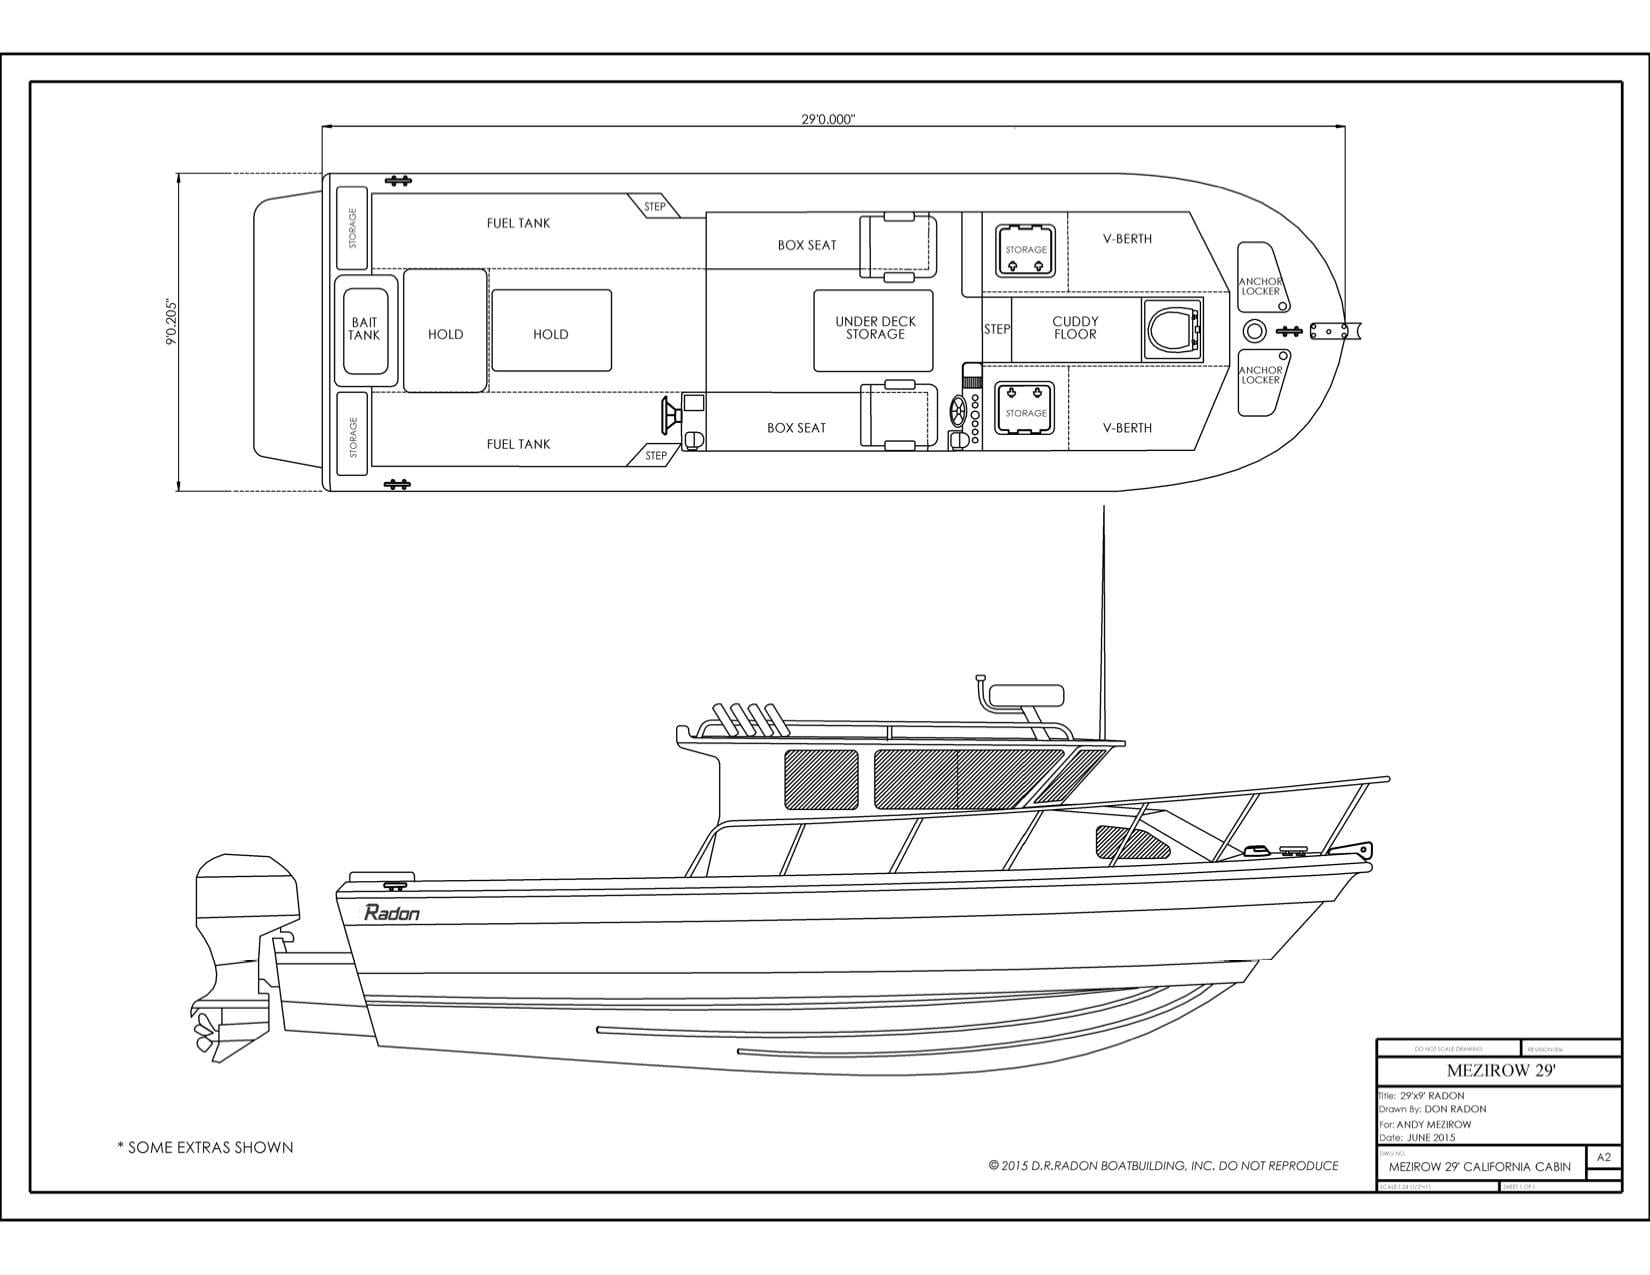 Our new Custom Don Radon, salmon boat is coming along nicely...